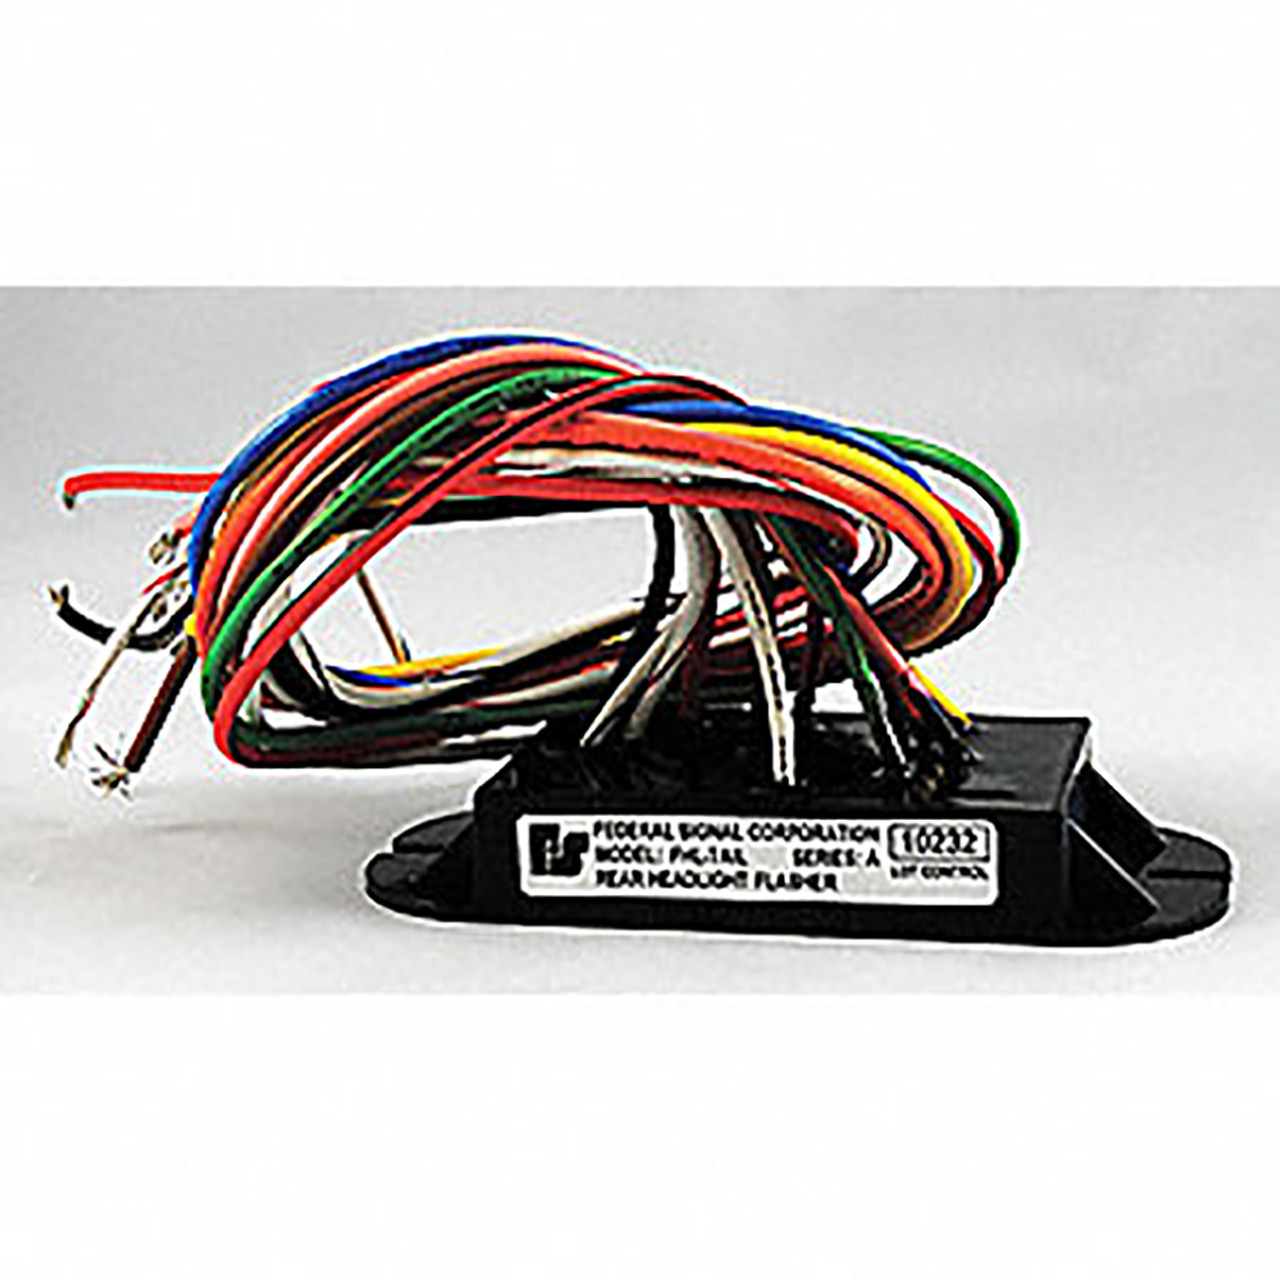 hight resolution of federal signal ford explorer taillight flasher with 18 wire leads fleet safety